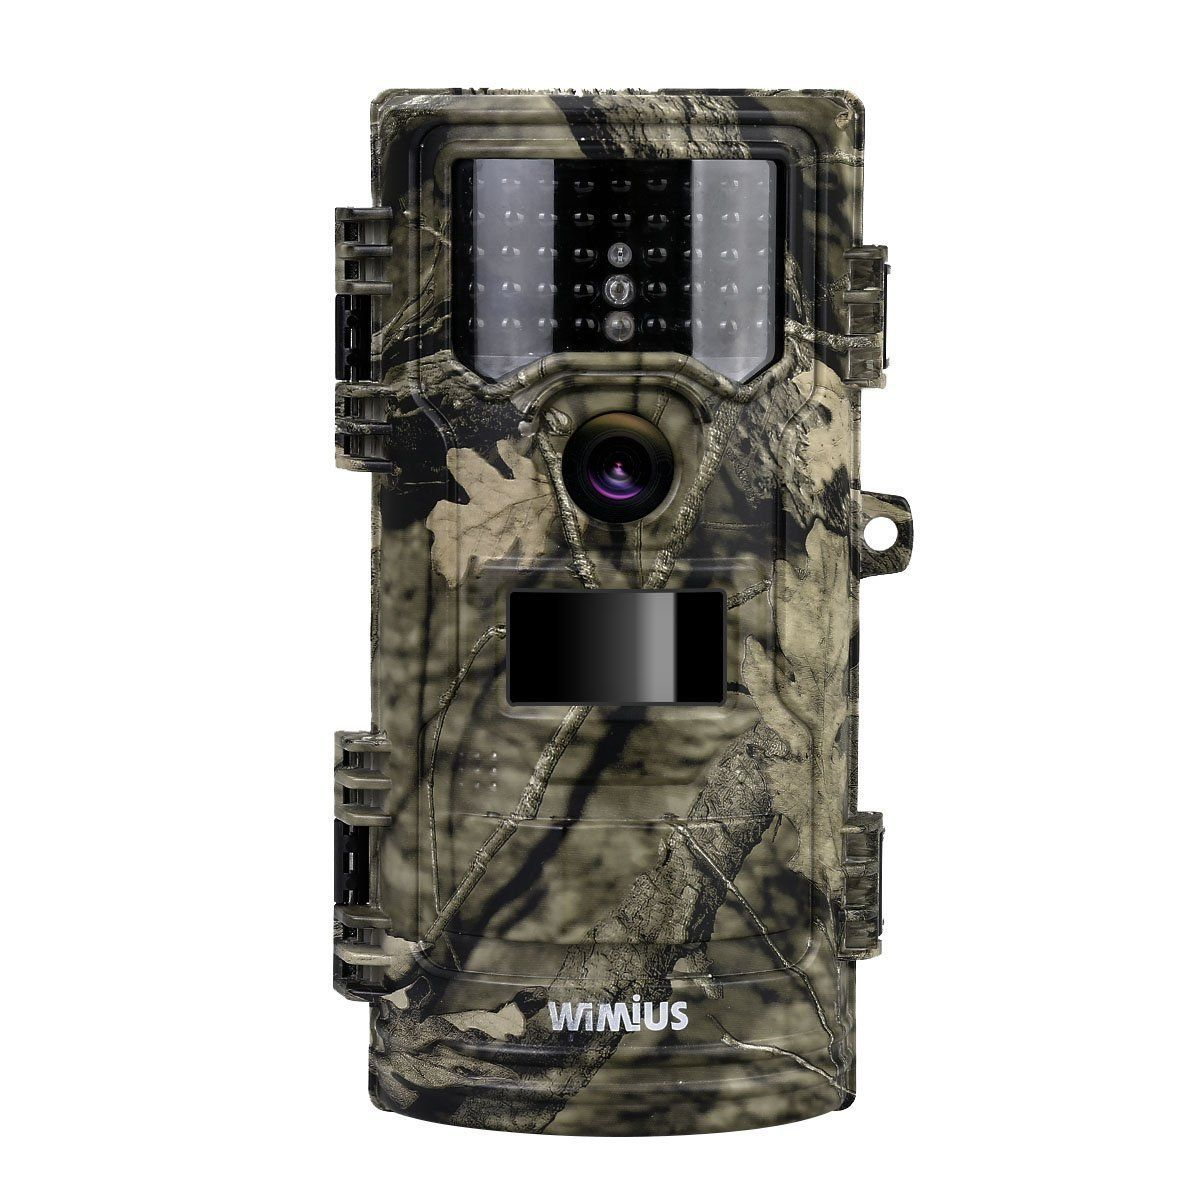 9d2832a921b best game camera 2019 game camera stealth cam moultrie game cameras trail  camera hunting cameras deer